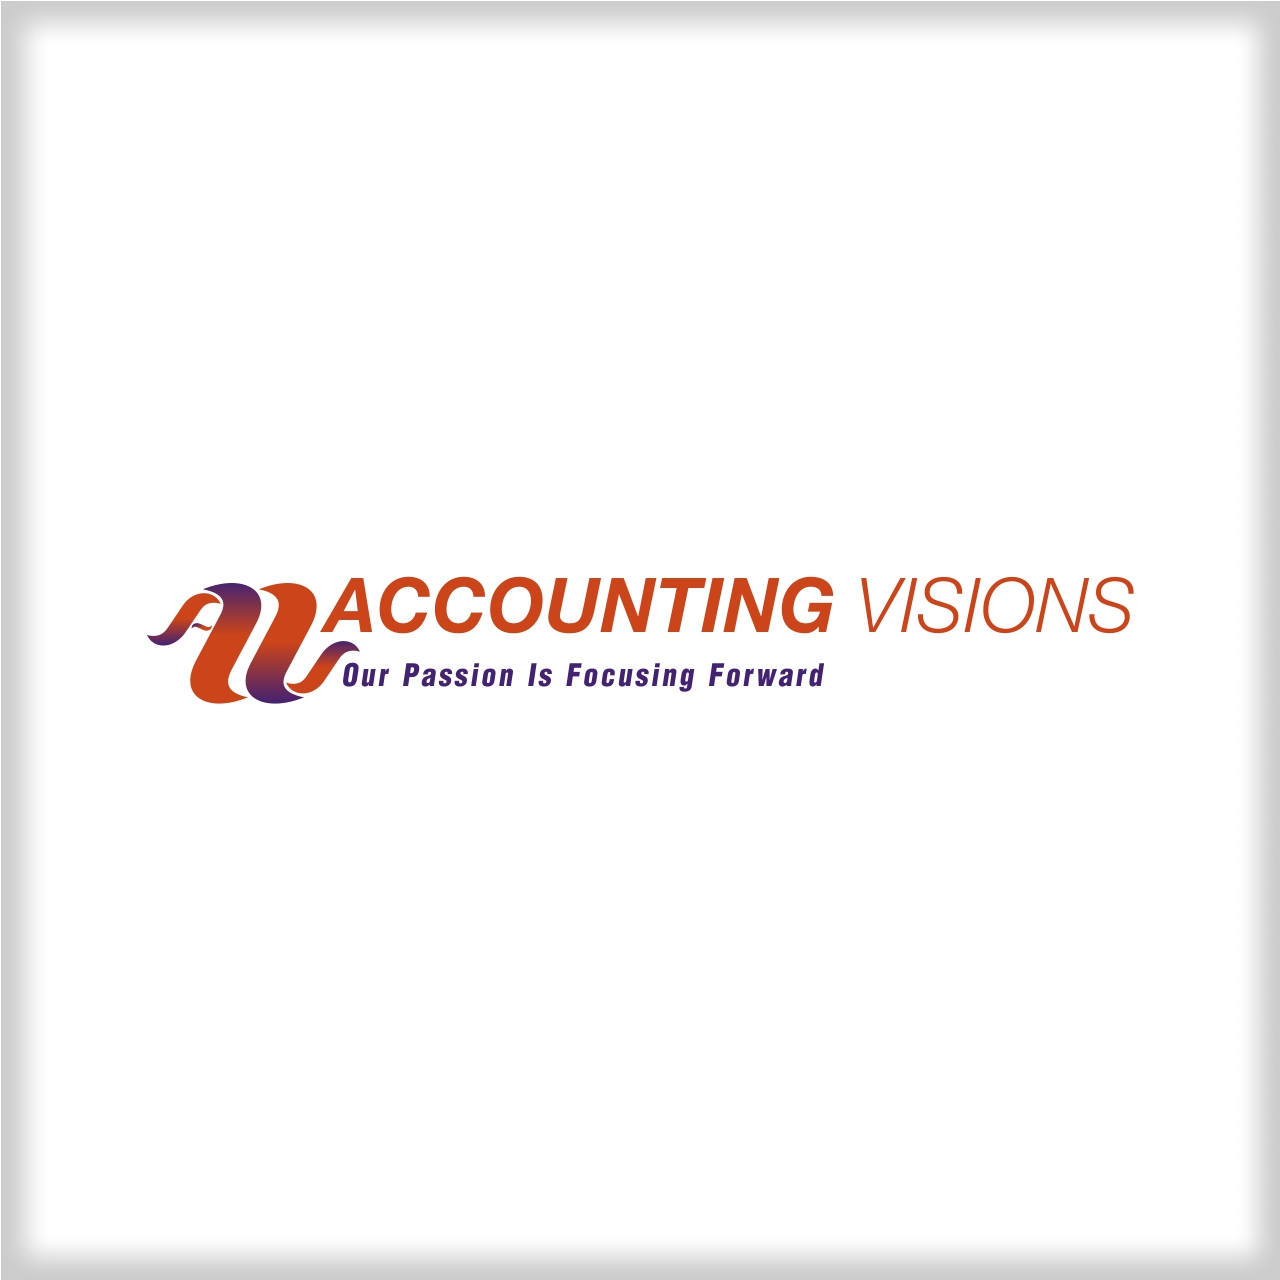 Logo Design by martinz - Entry No. 25 in the Logo Design Contest Accounting Visions.